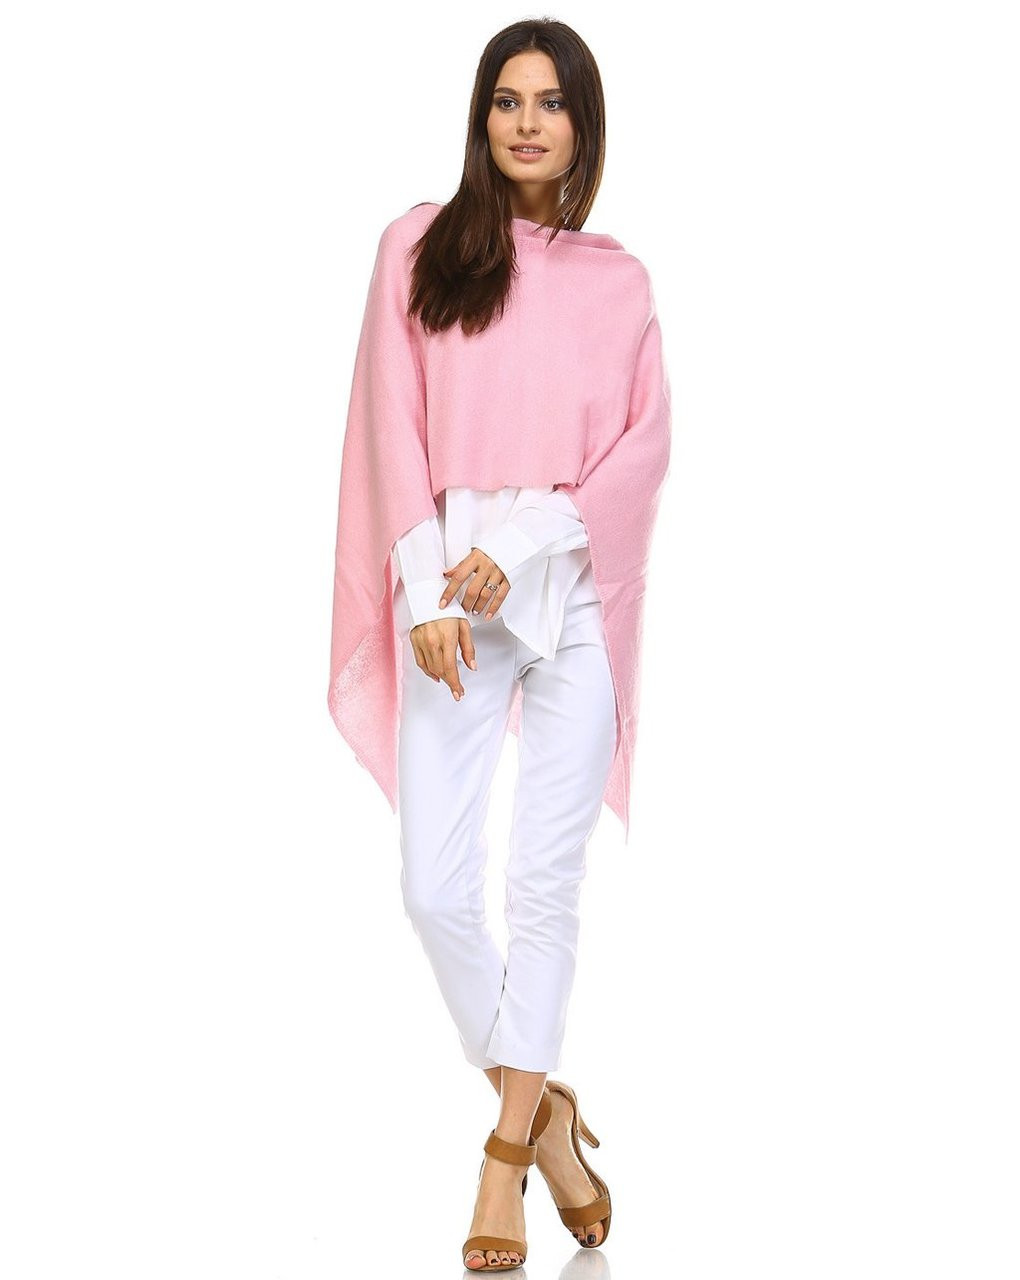 Cashmere Poncho - Cotton Candy